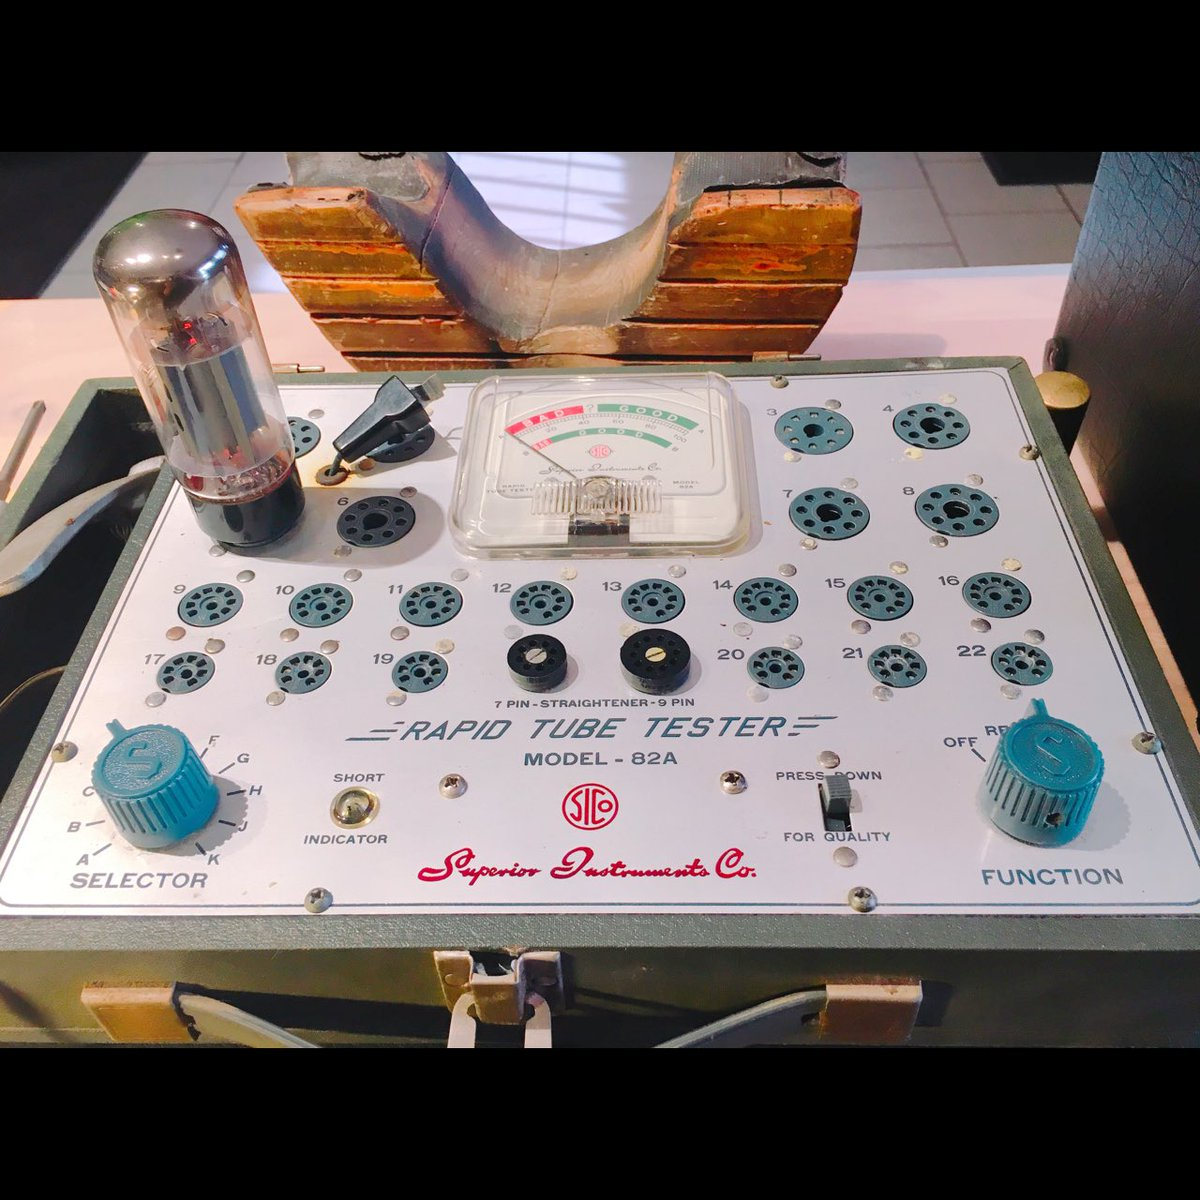 Checking amp tubes #jessedeandesigns #guitartech #stewmac #luthier #mesaboogie<br>http://pic.twitter.com/Lm4MVBUHom